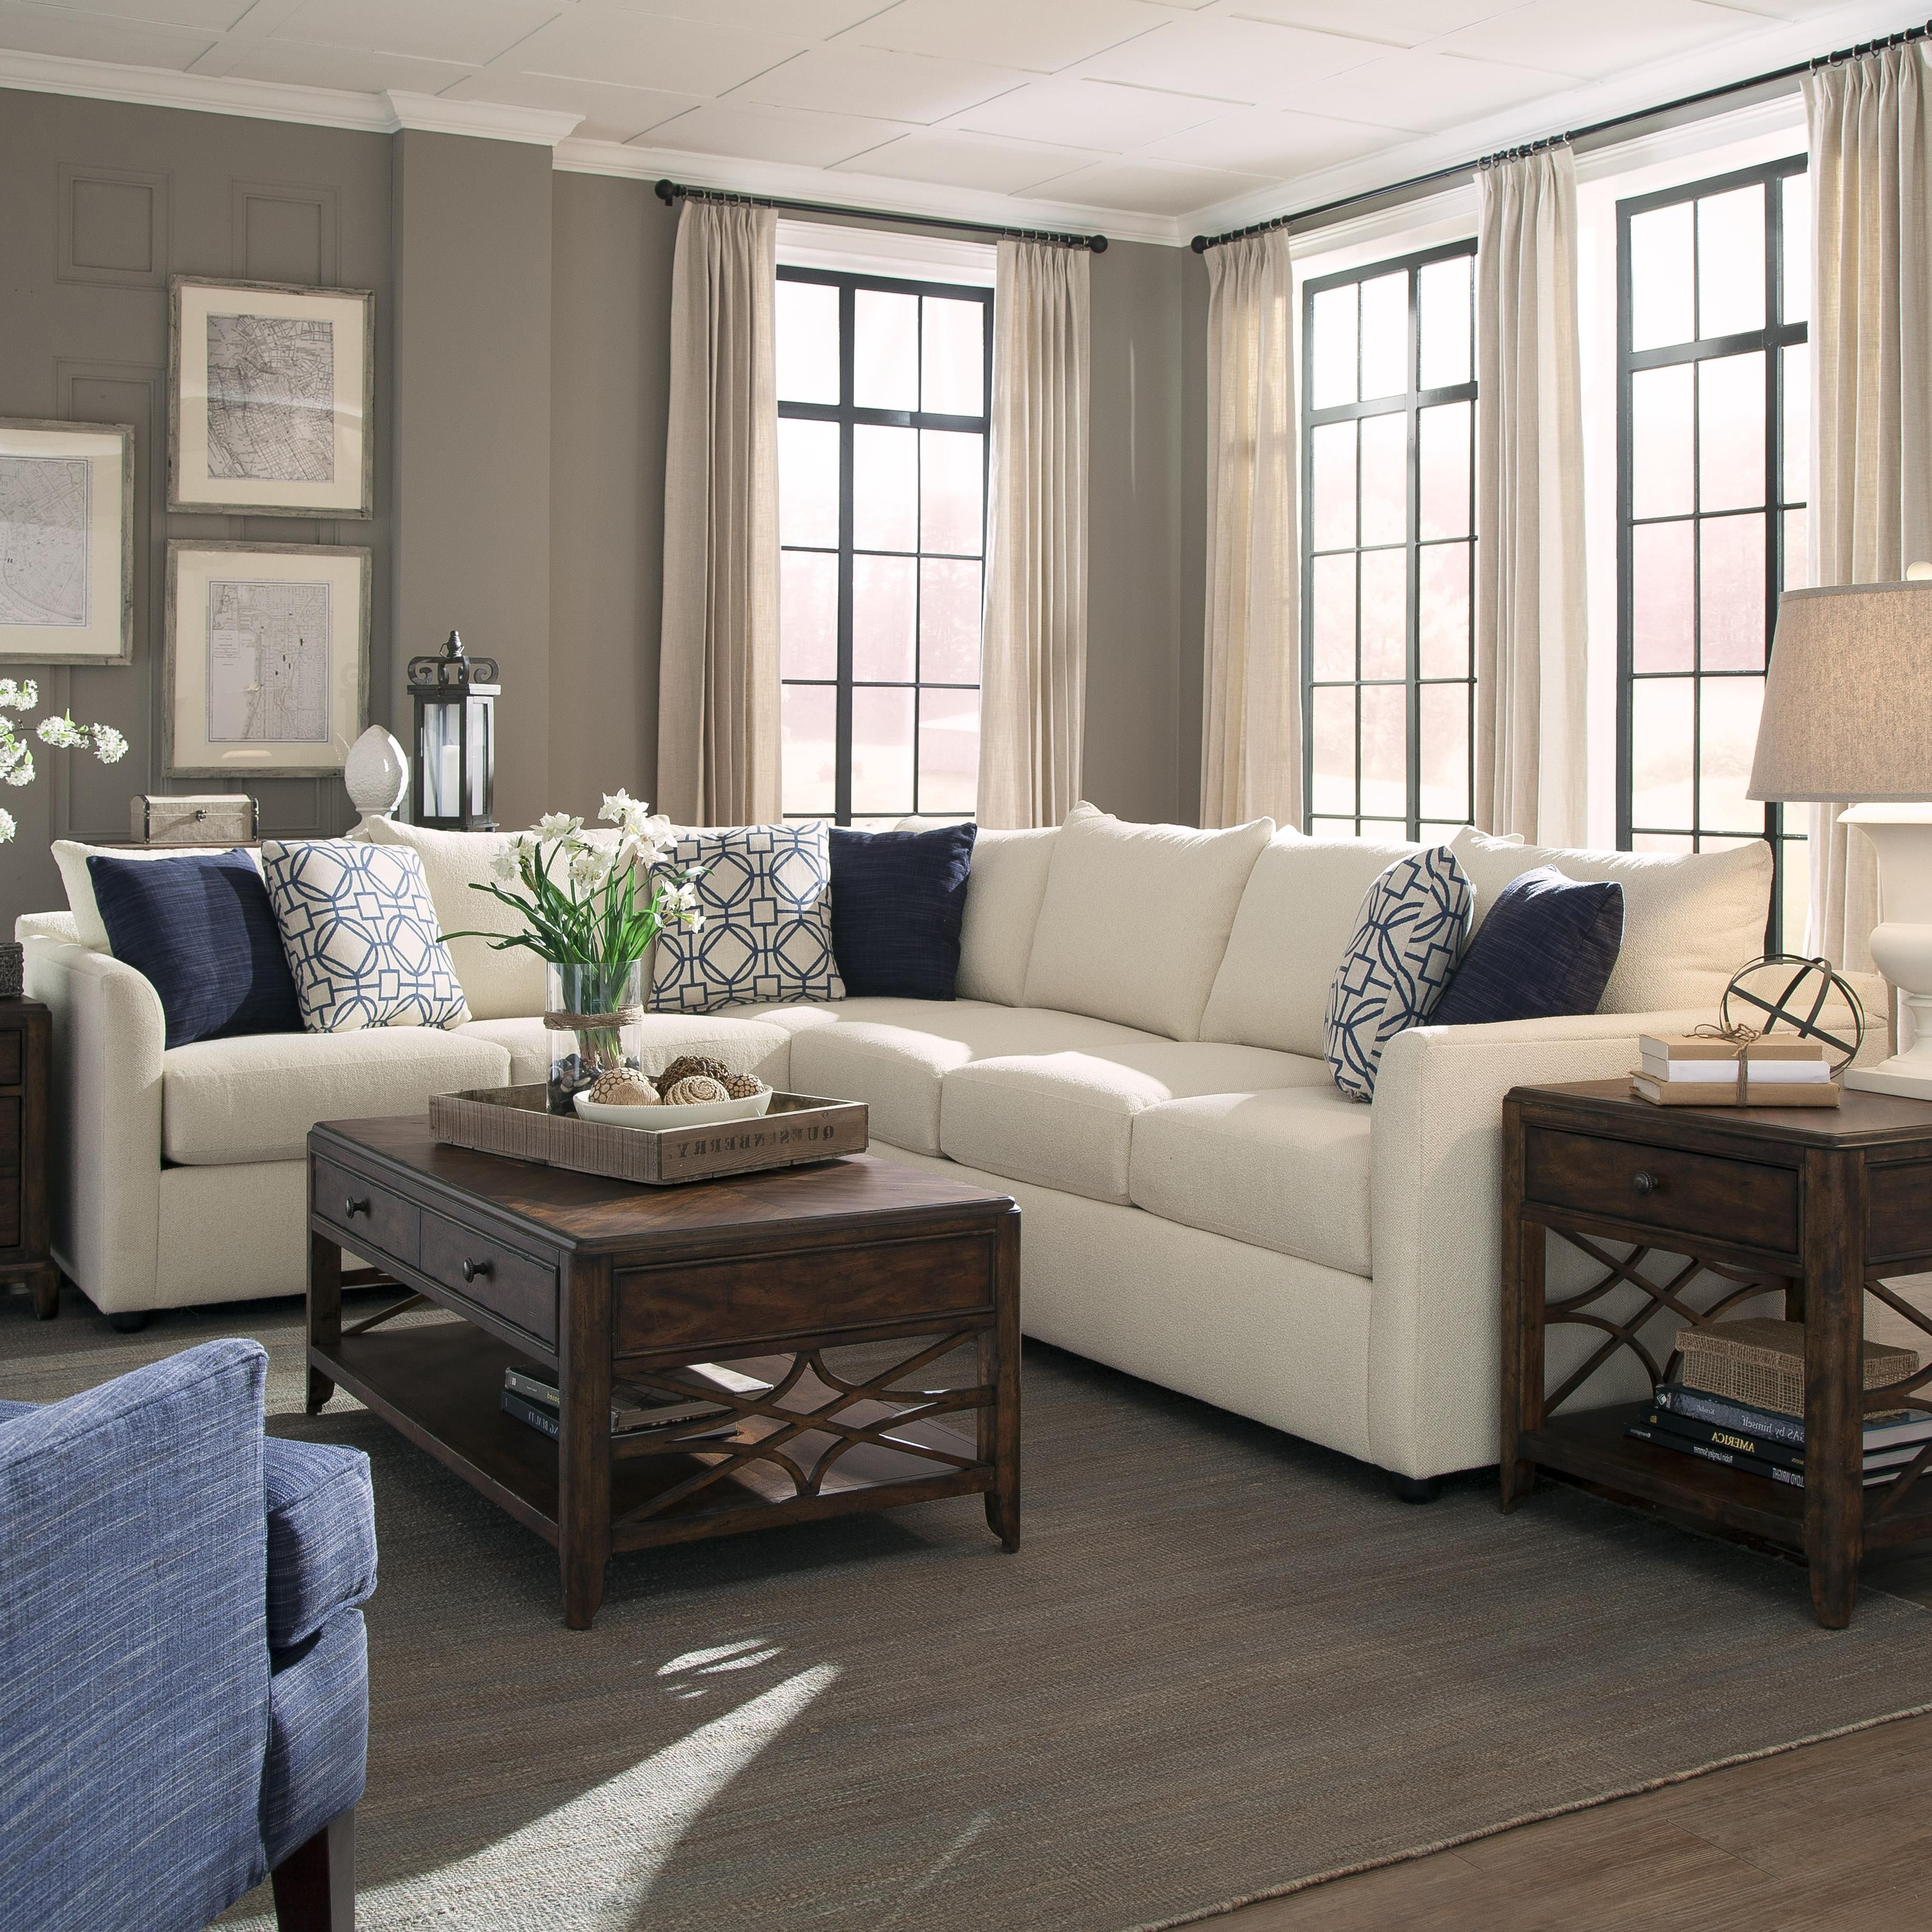 Transitional Sectional Sofa With Tuxedo Arms